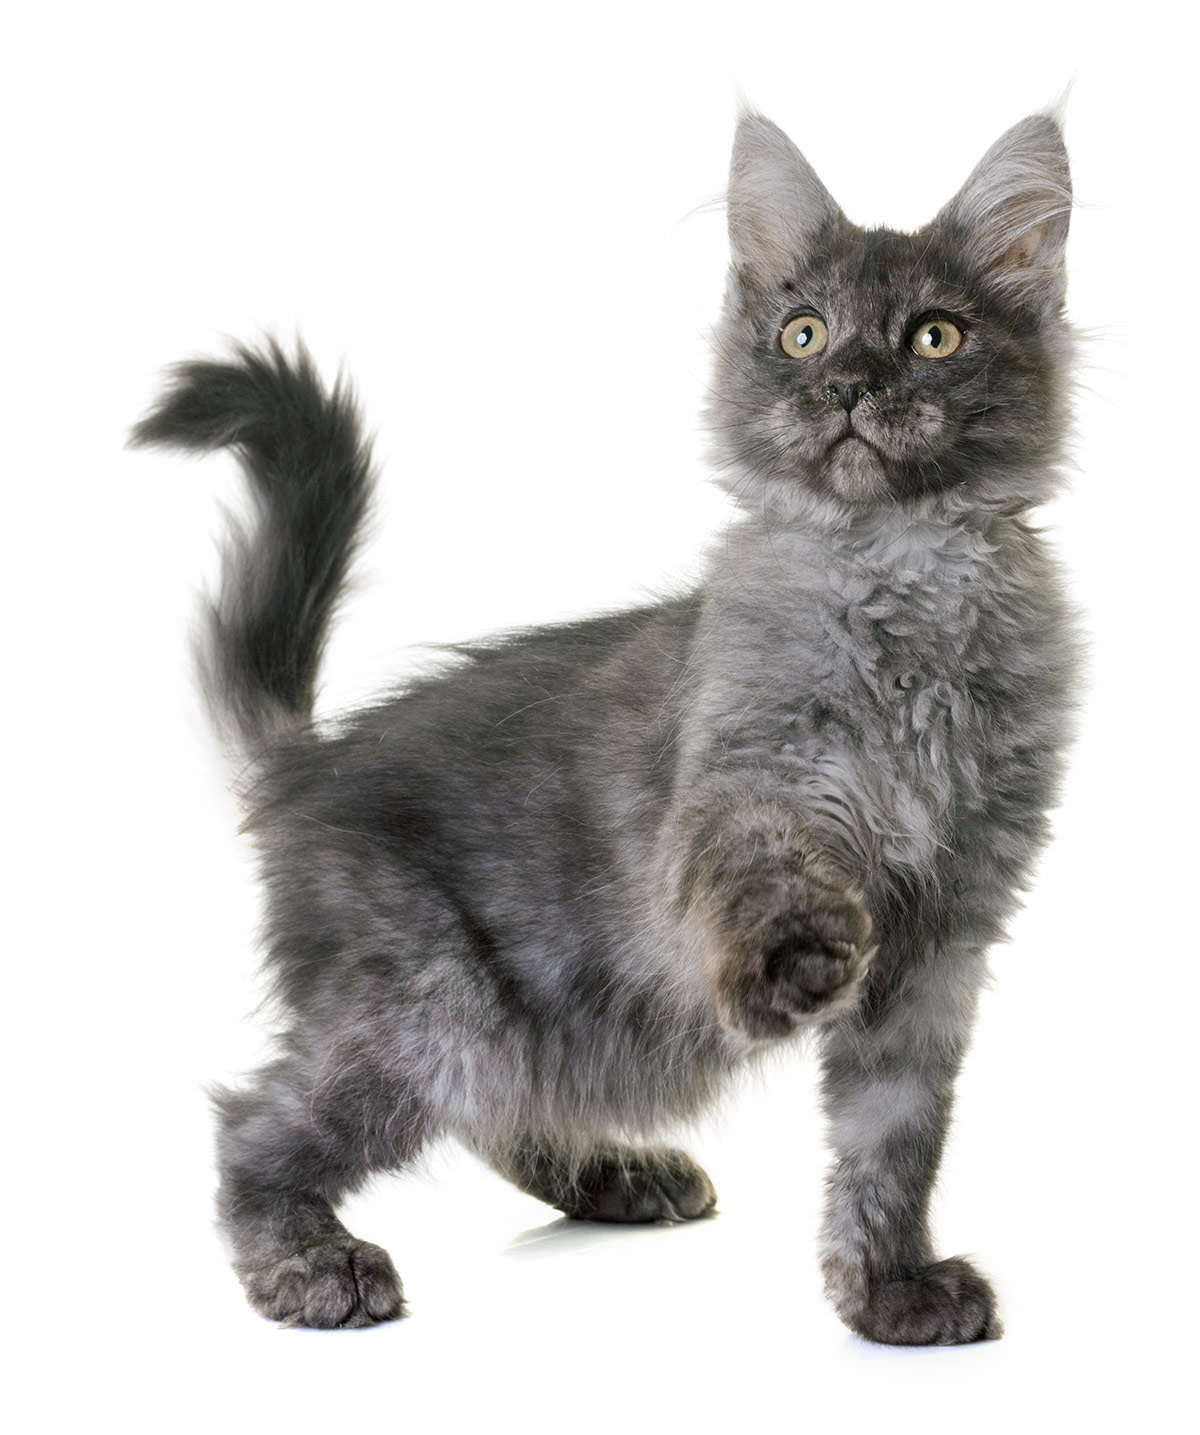 Gray Maine Coon photos